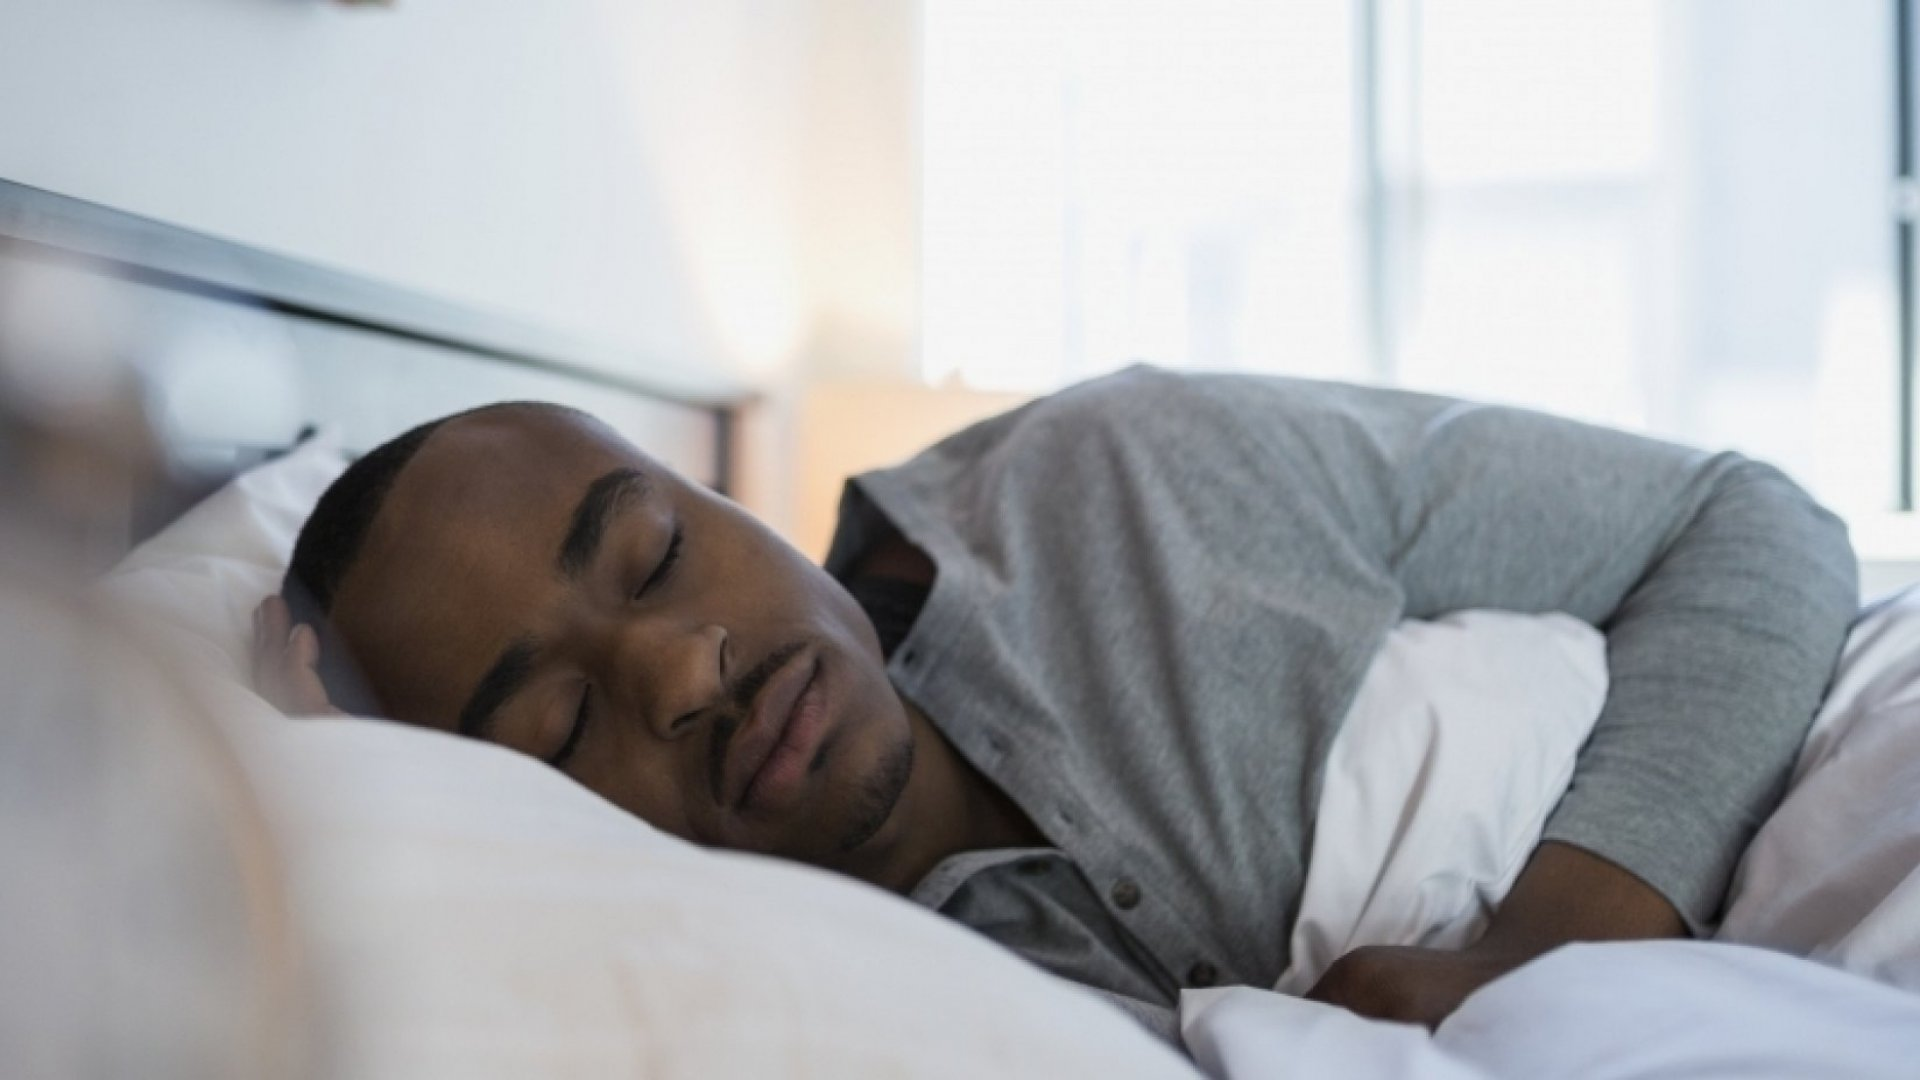 5 Things Most People Misunderstand About Sleep